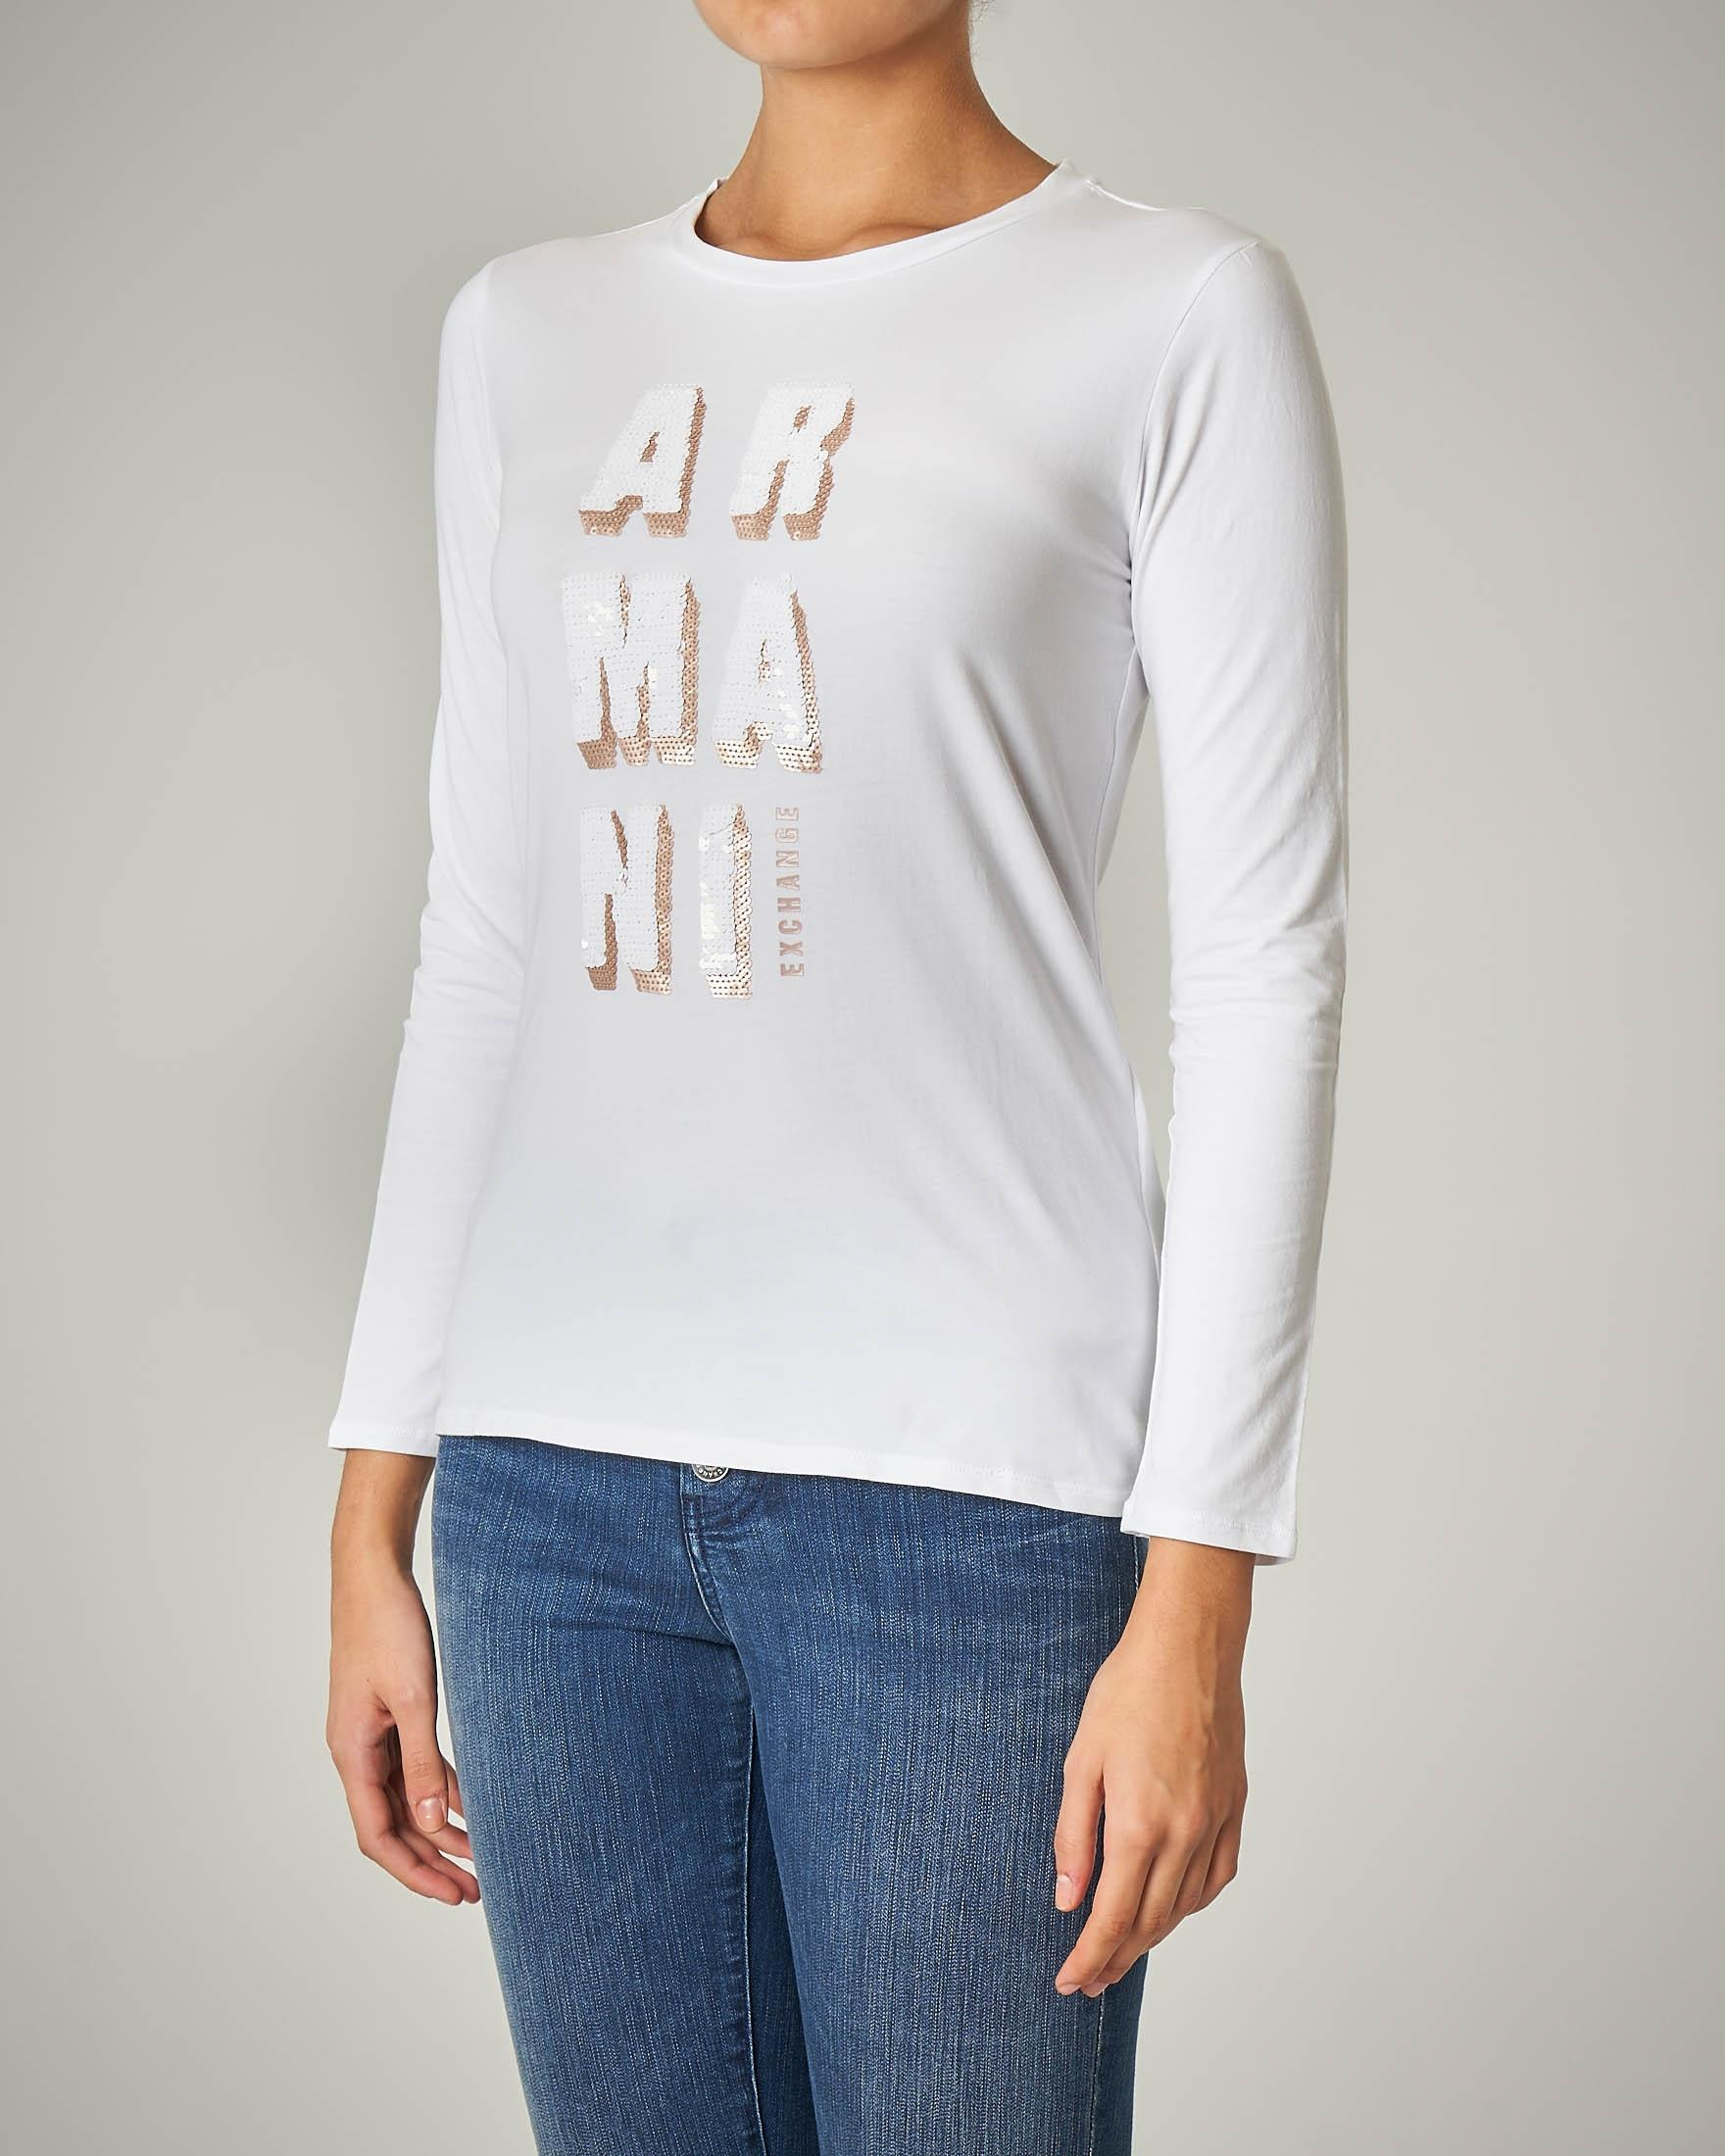 T-shirt bianca manica lunga con logo in paillettes